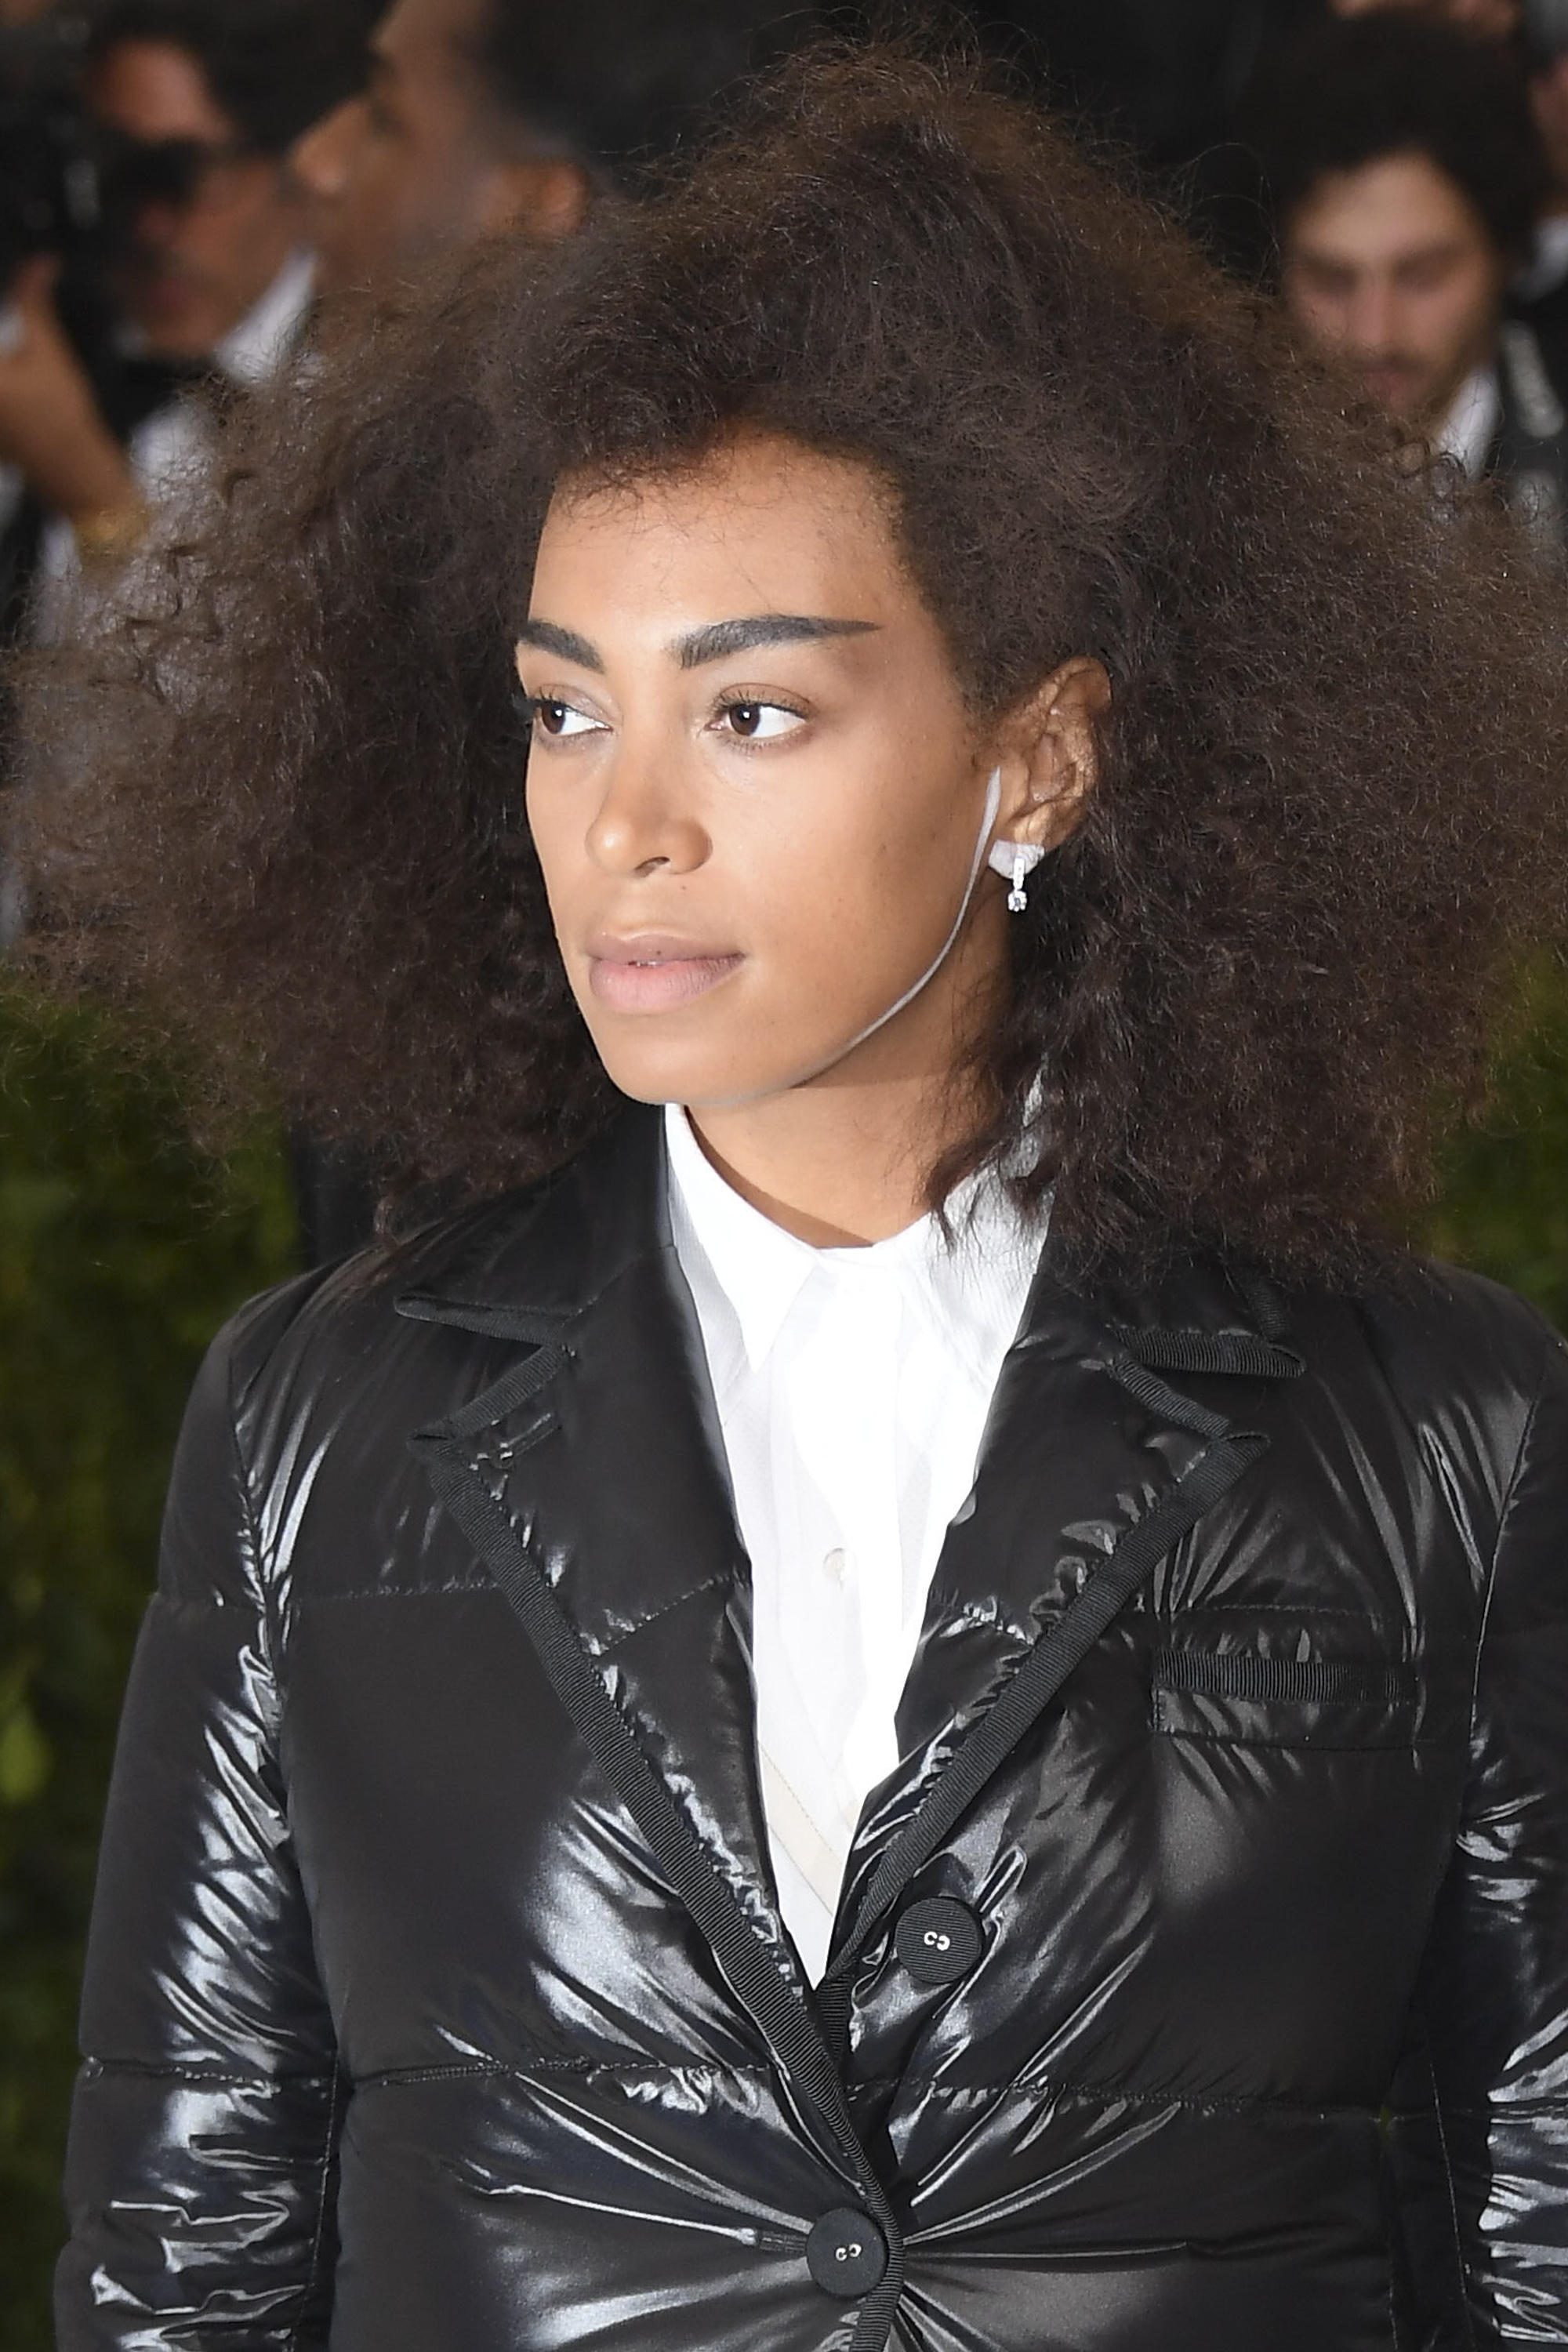 Solange wears Piaget jewellery at the Metropolitan Museum of Art's annual Costume Institute Gala (Photo by Venturelli/WireImage)